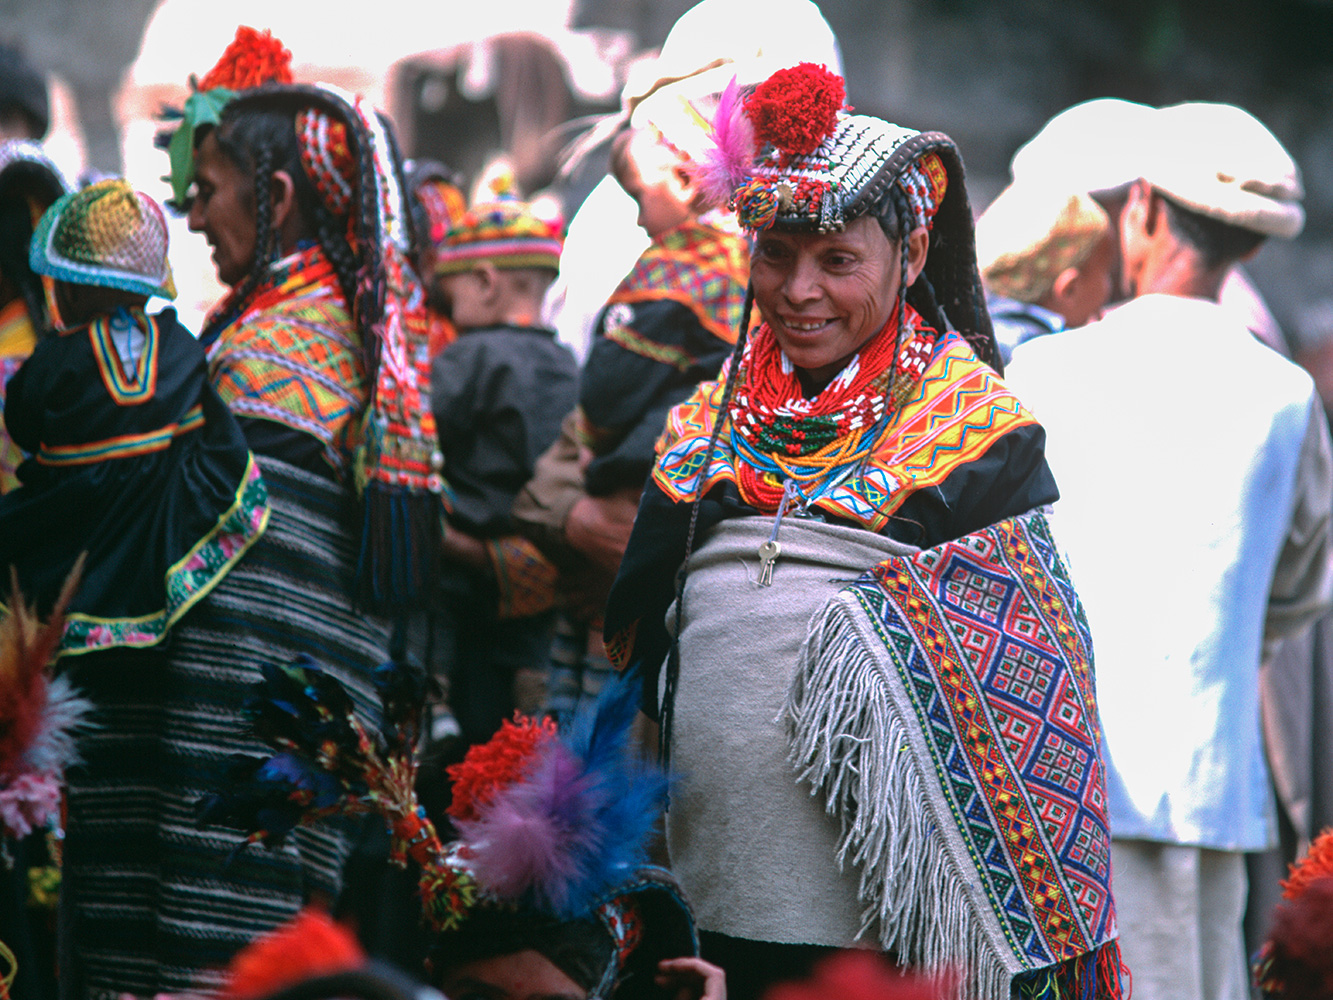 Taken during the Jhoshi spring festival at Rumbur village, Kalash Valleys, Chitral, NWFP, PakistanBronica ETRSi, 75mm, Fuji Velvia